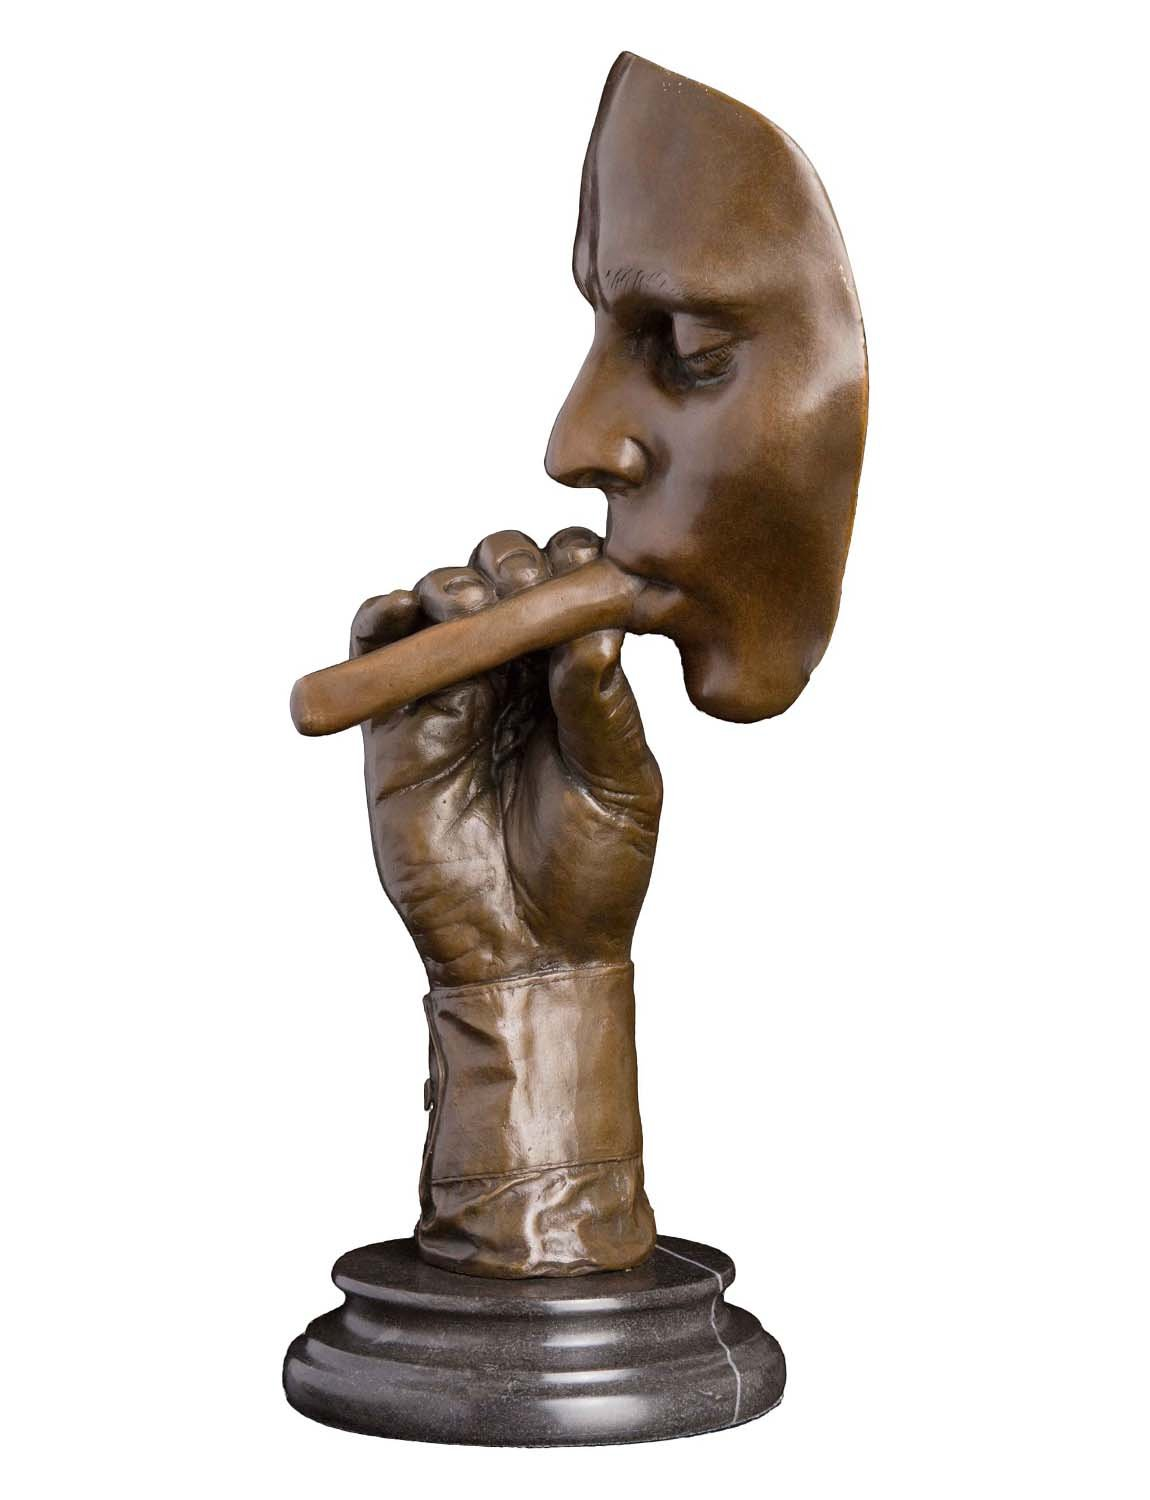 Artylife Lost Wax European Bronze Sculpture Smoking Man Cigar Marble Base Figurine by Dali Bronze Statue Home Decor Collectible Gift by Artylife (Image #2)